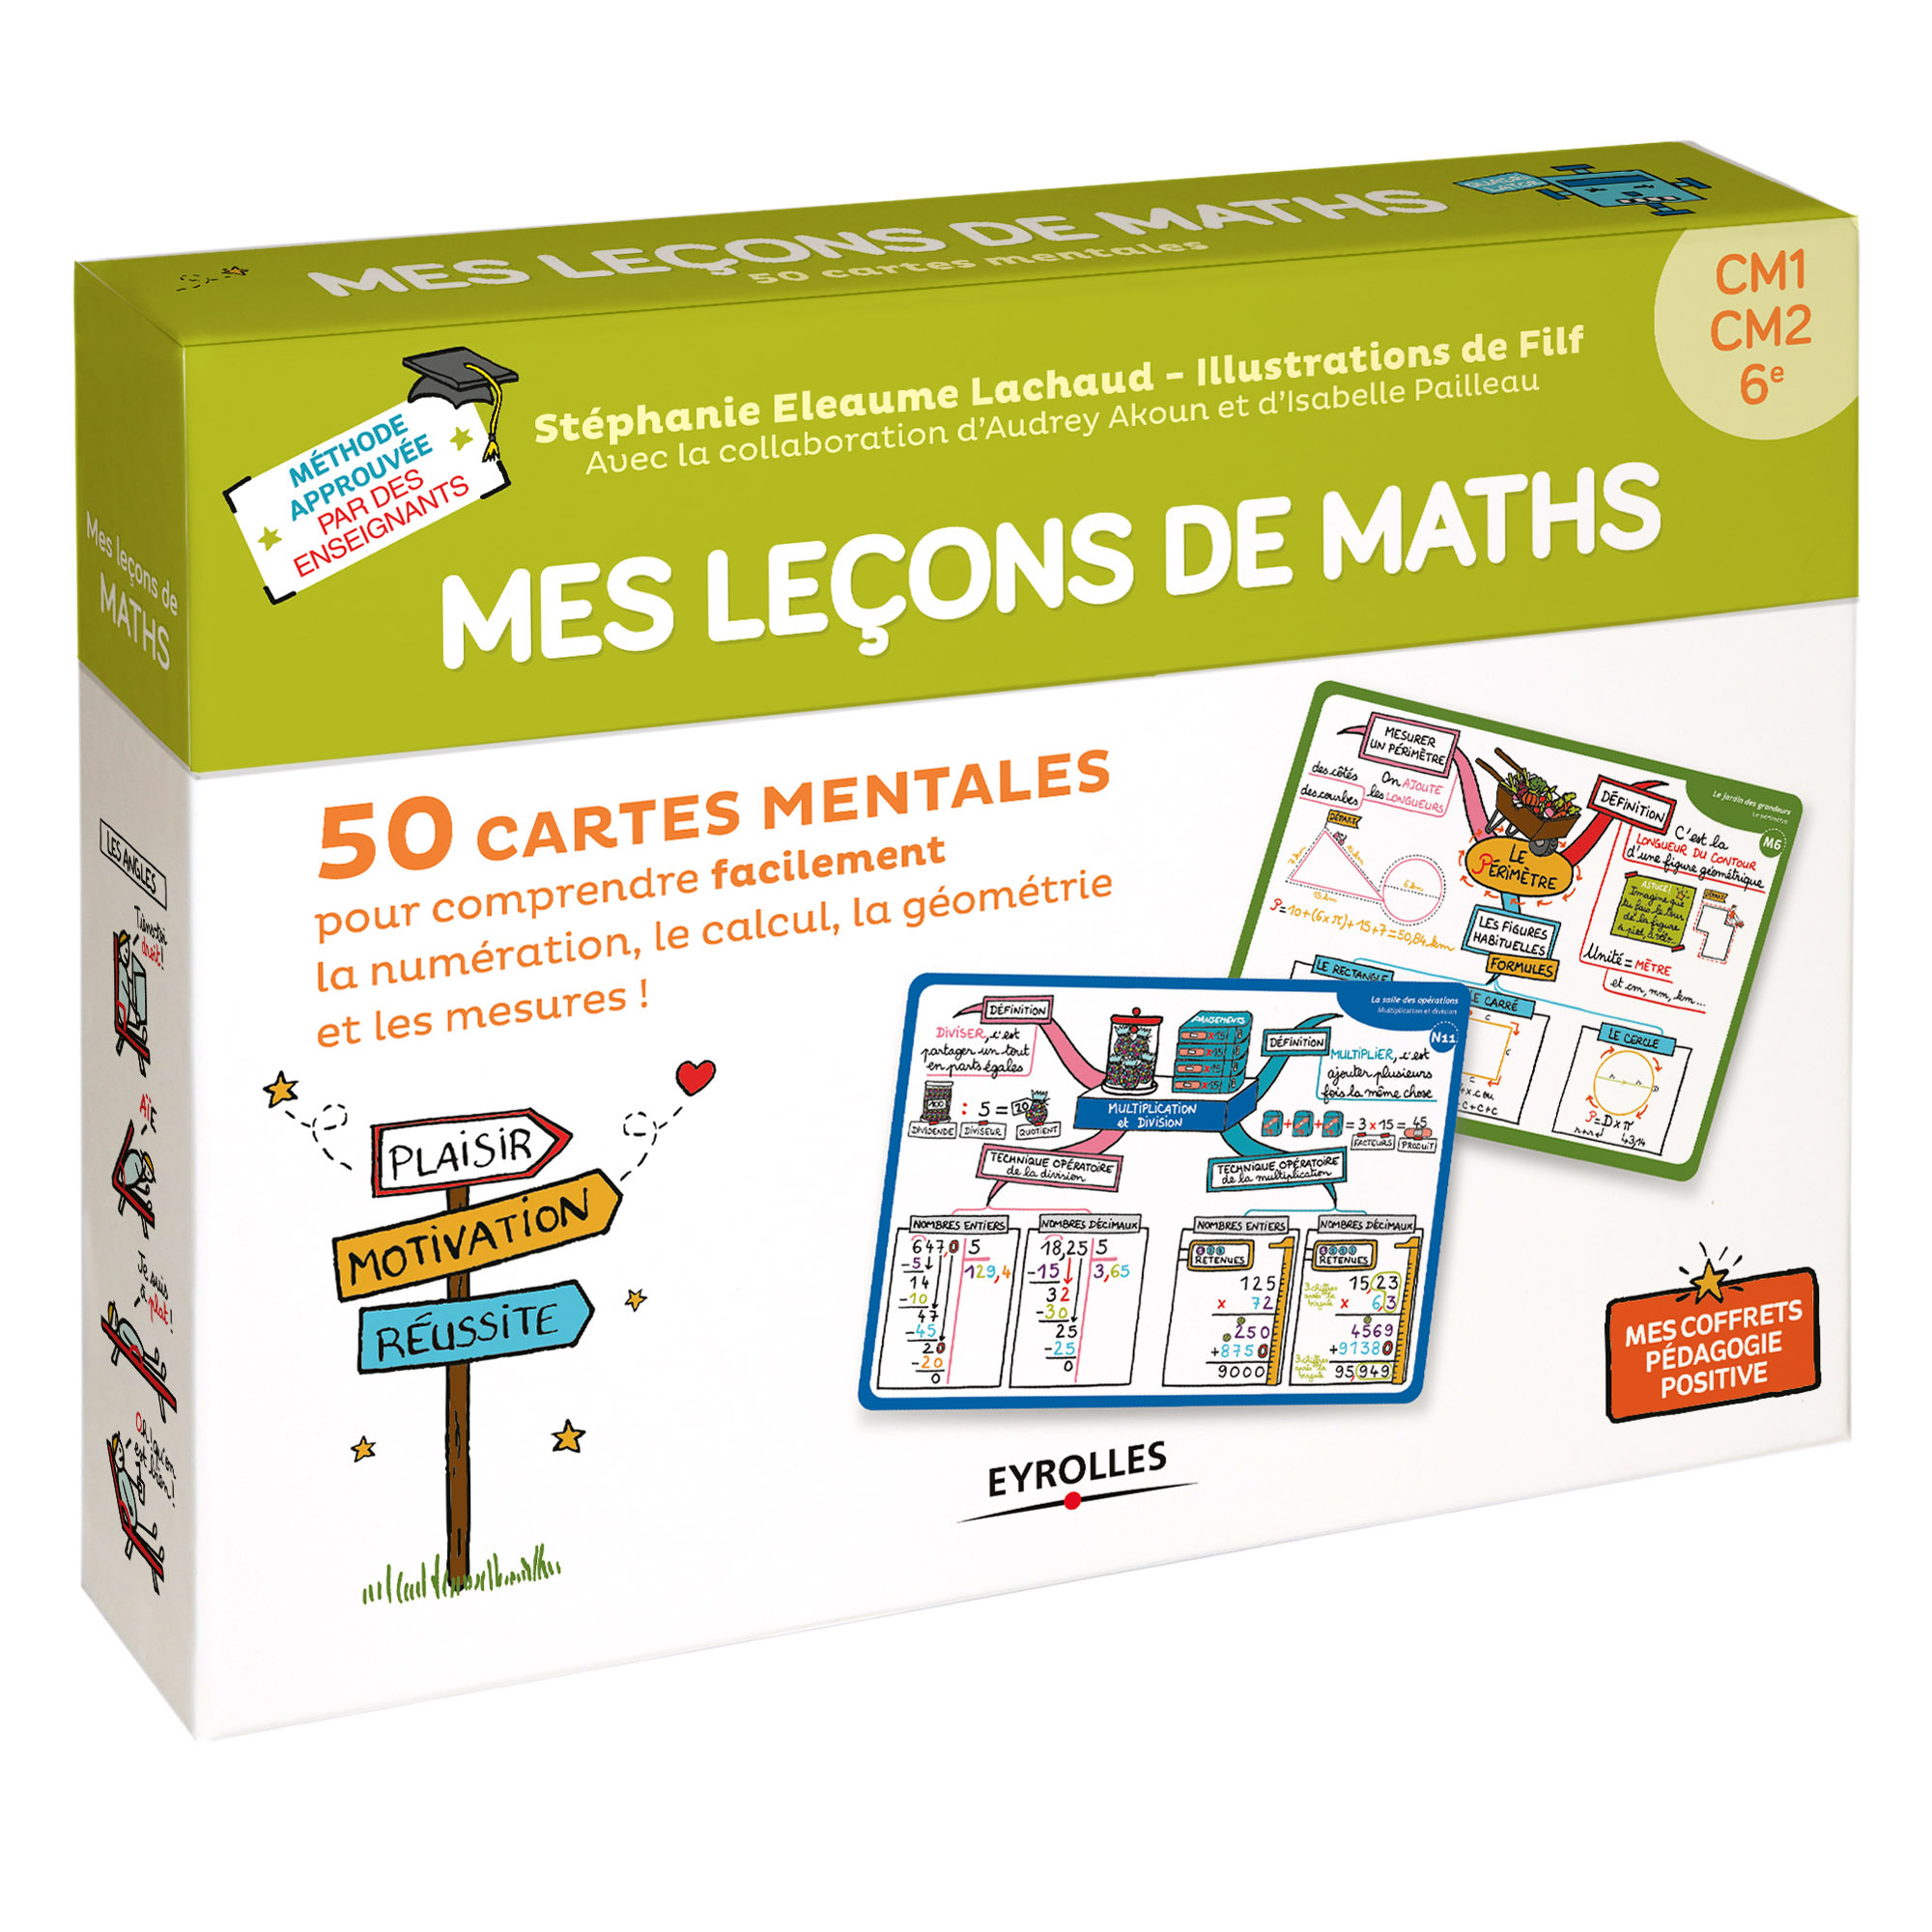 MES LECONS DE MATHS - 50 CARTES MENTALES POUR COMPRENDRE FACILEMENT LA NUMERATION, LE CALCUL, LA GEO